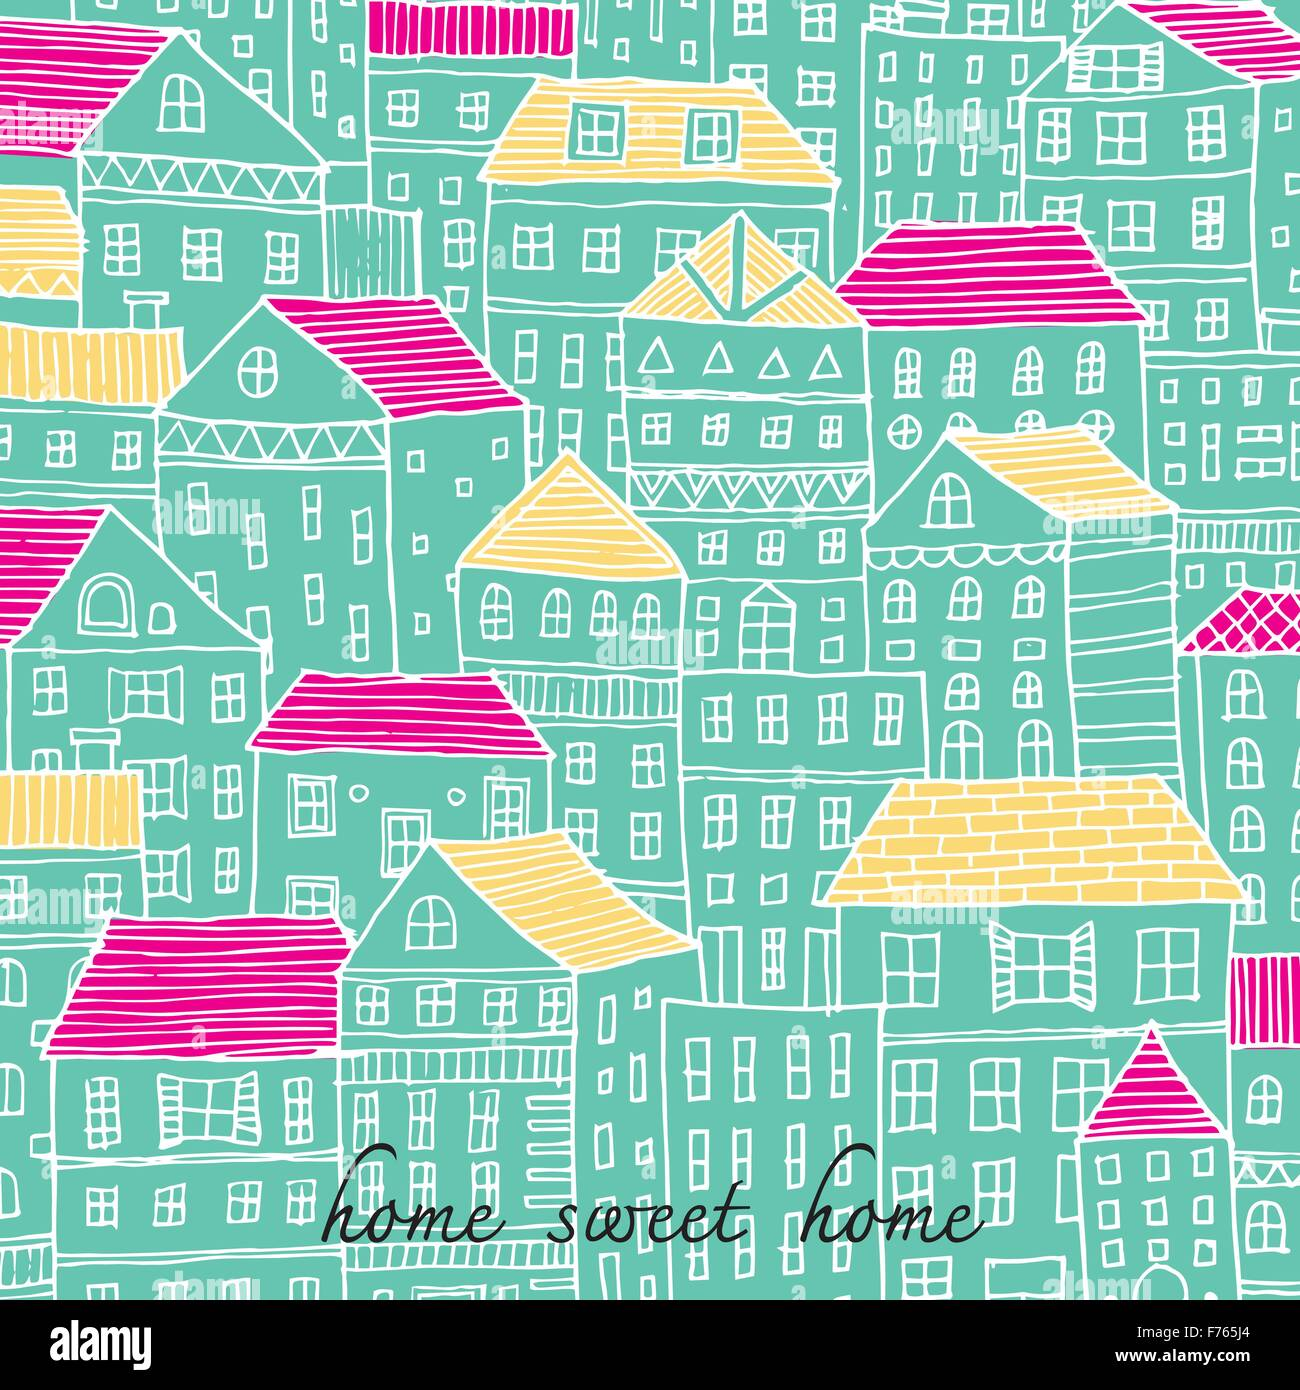 Home sweet Home doodle illustration sketch style pastel color - Stock Vector